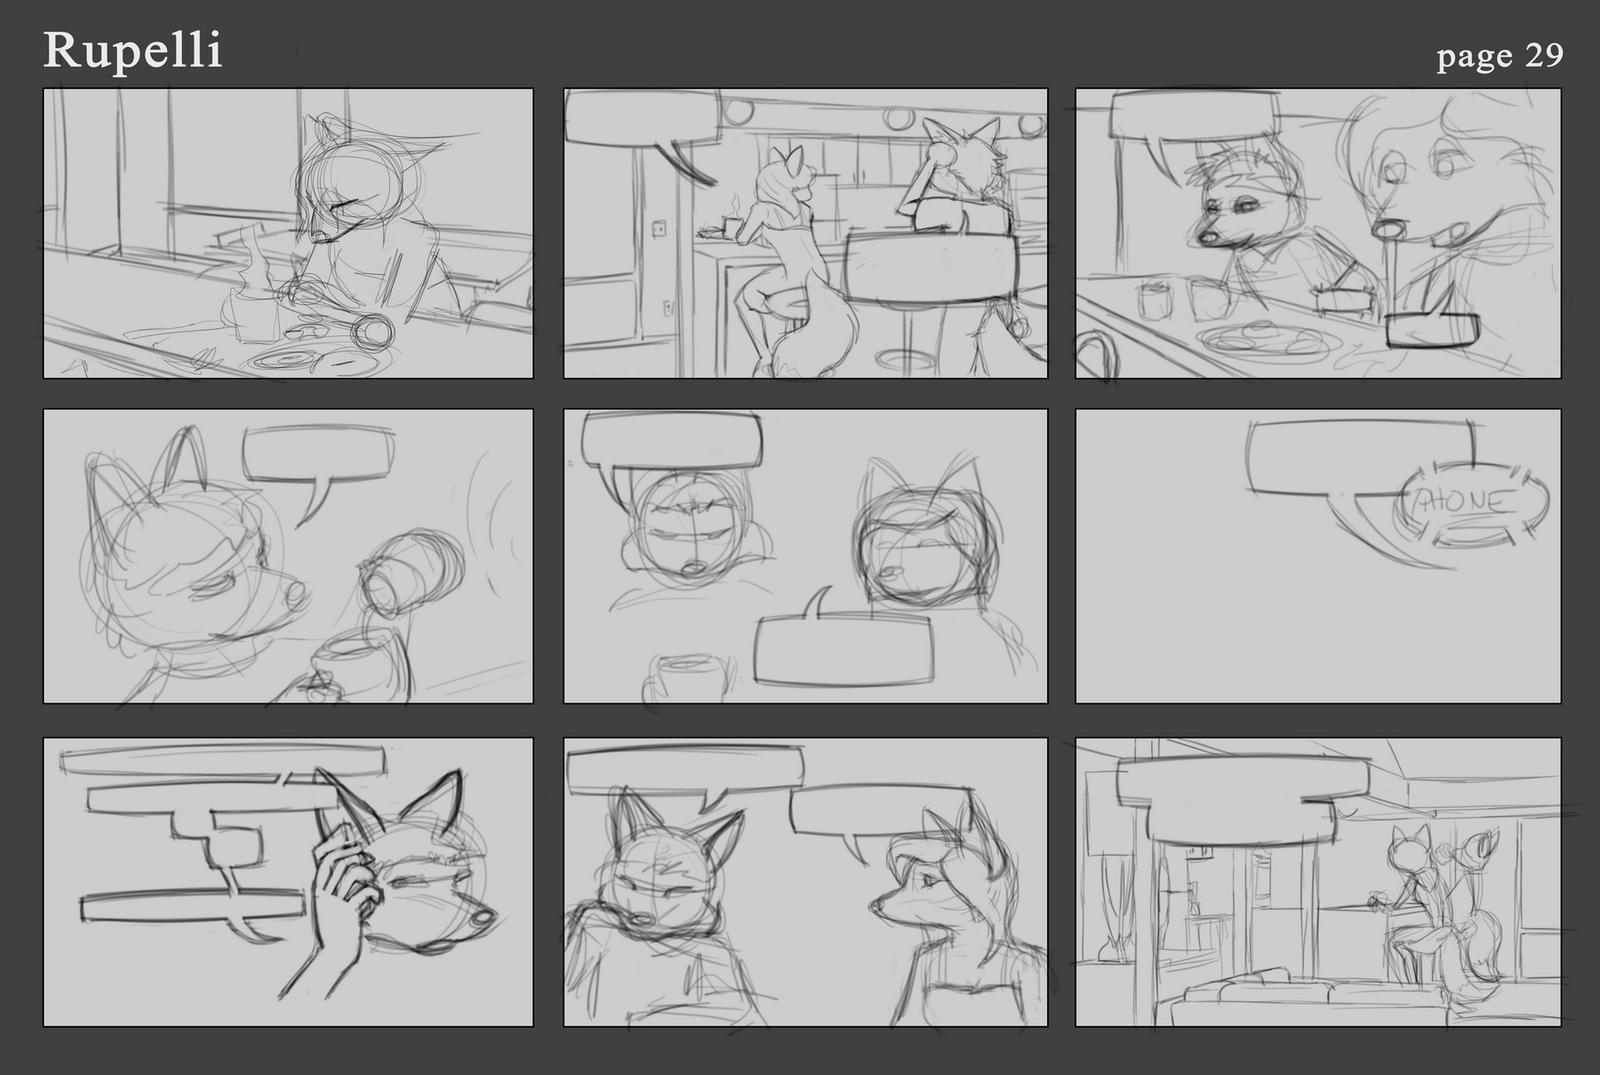 Rupelli, page 29 wip by MarcelloRupelli